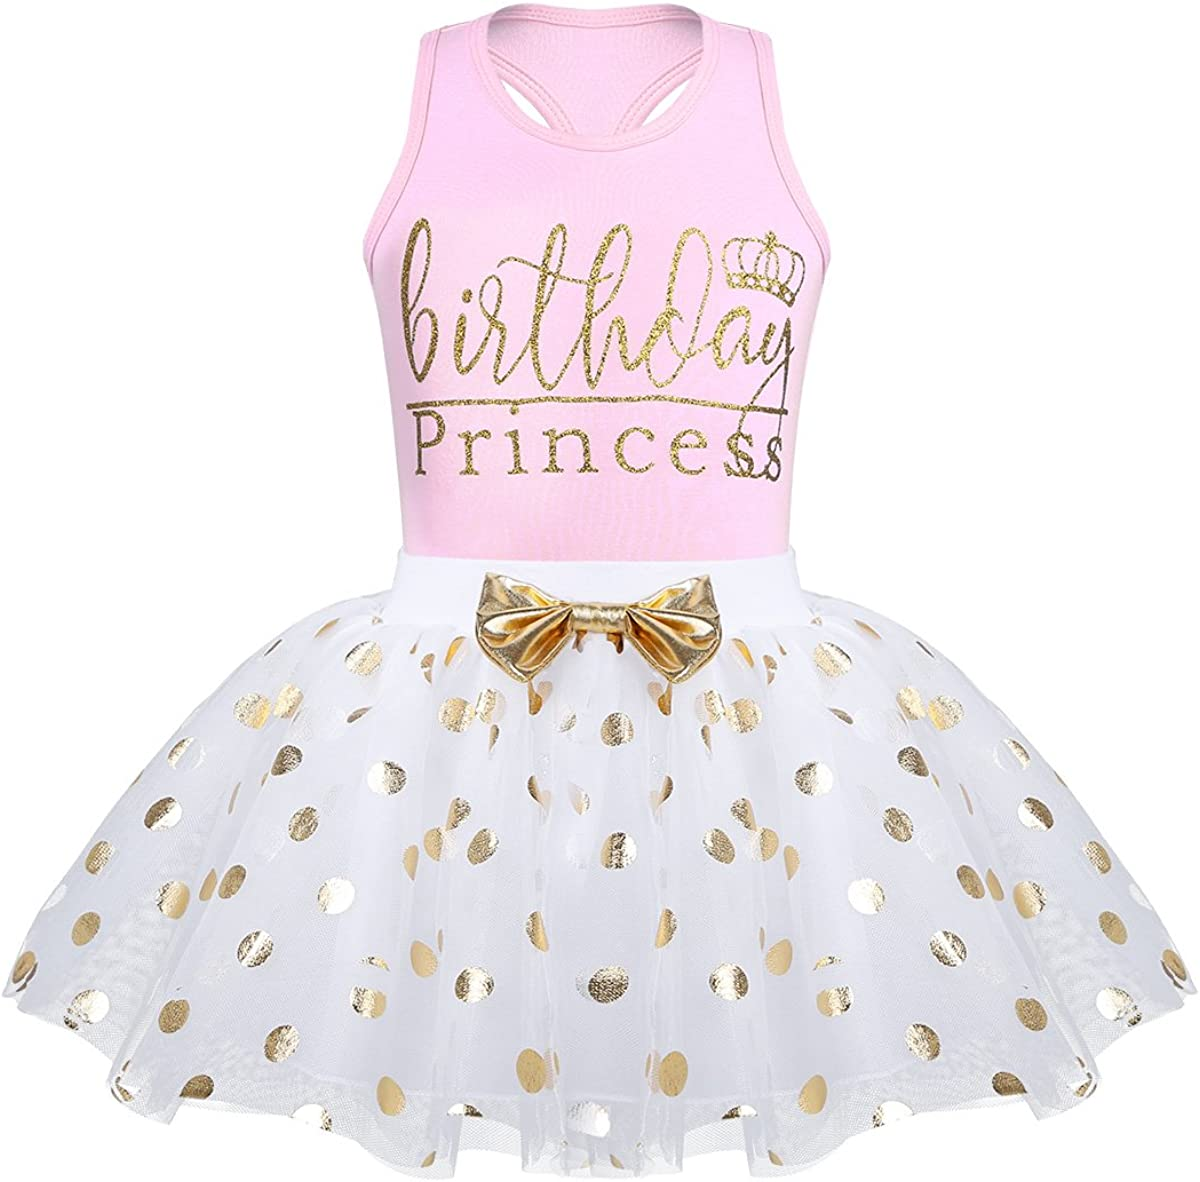 Freebily Baby Toddlers Girls Fancy Shiny Polka Dots Birthday Outfits Princess Racer Back Tank Tops with Mesh Tutu Skirts Set